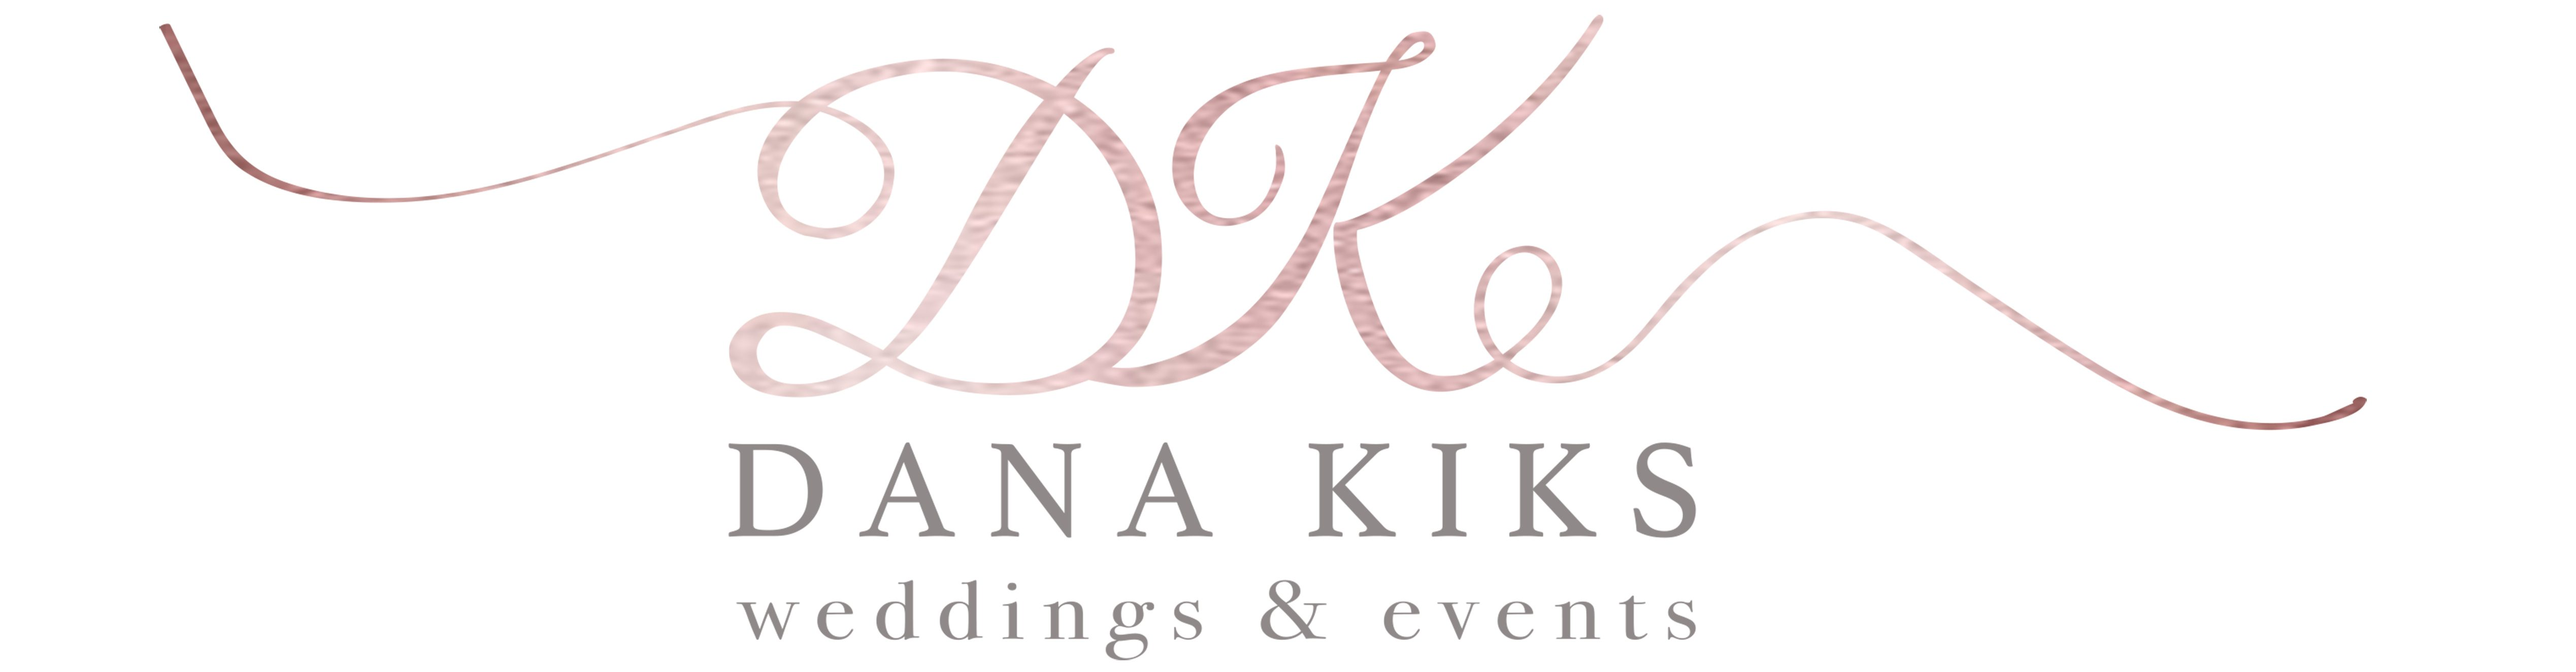 Dana Kiks Weddings & Events